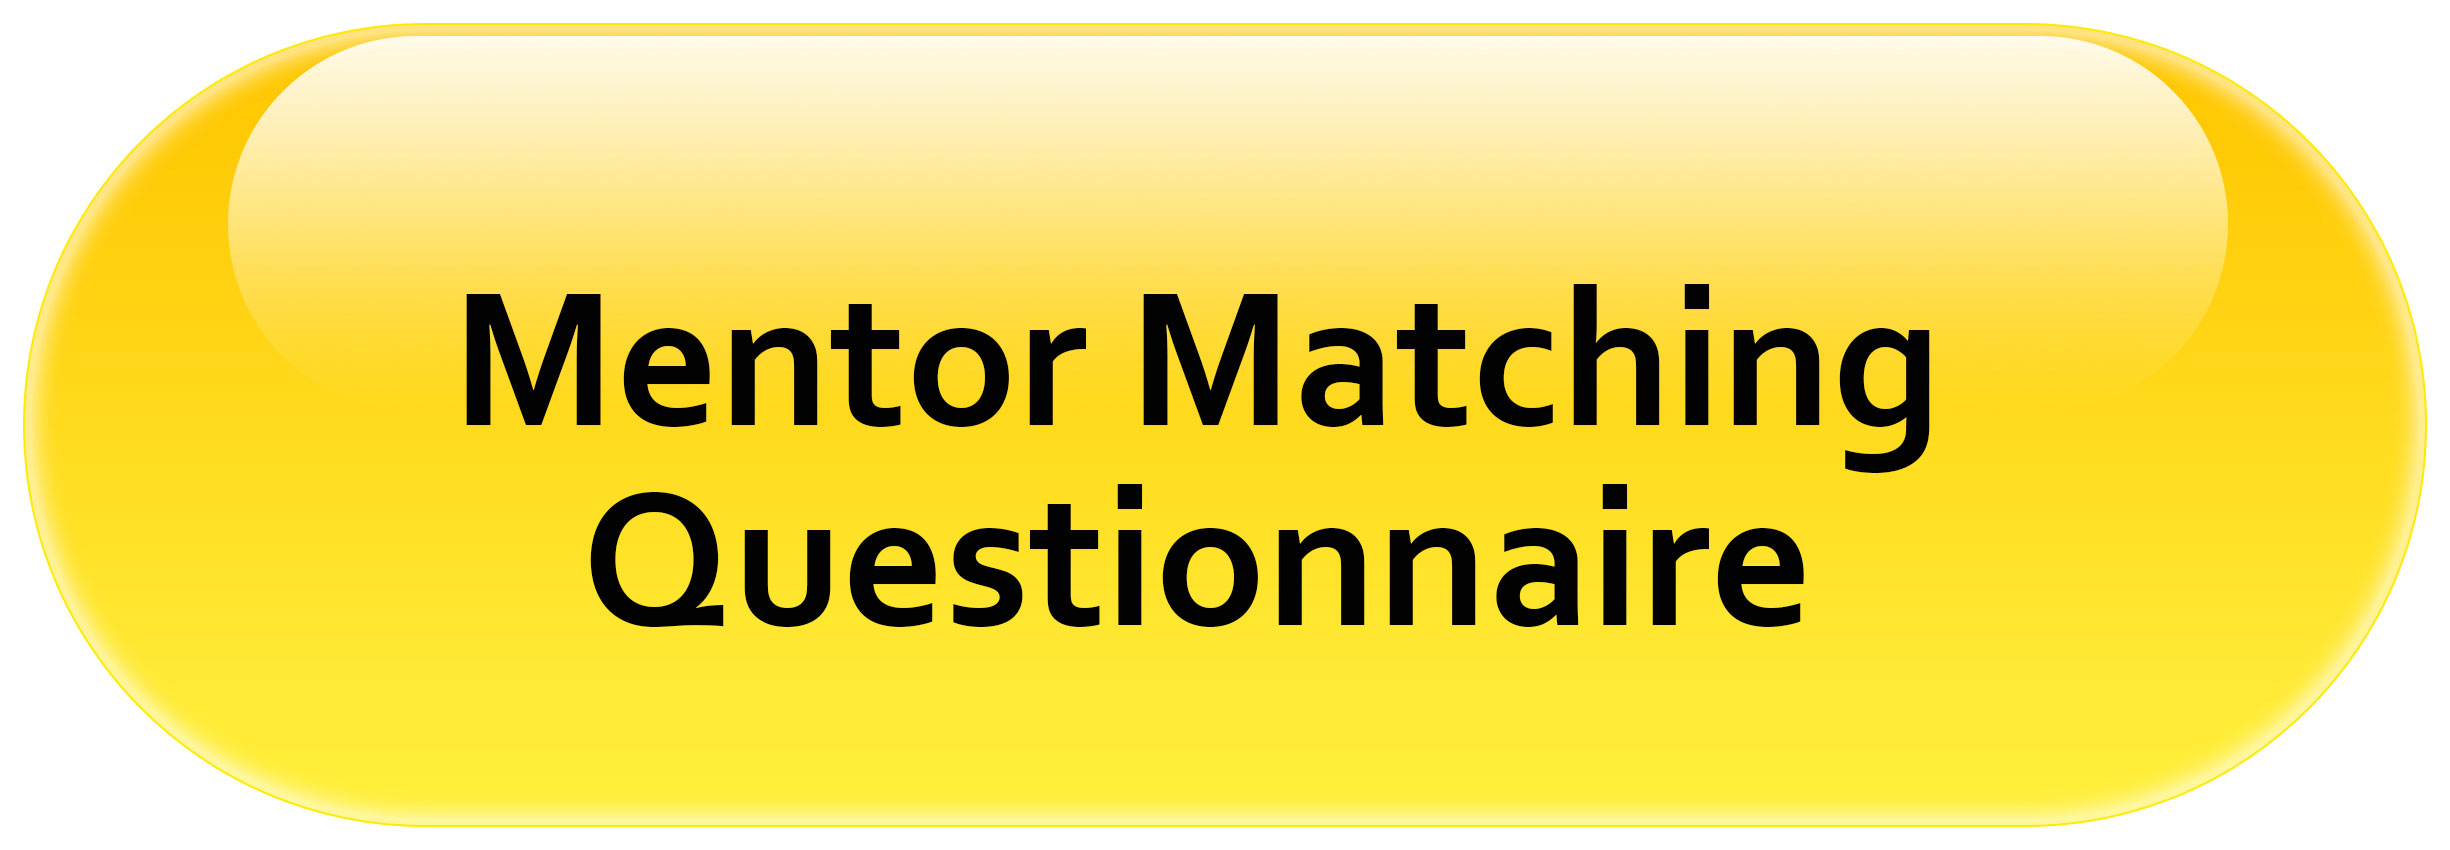 Mentor Matching Questionnaire Form